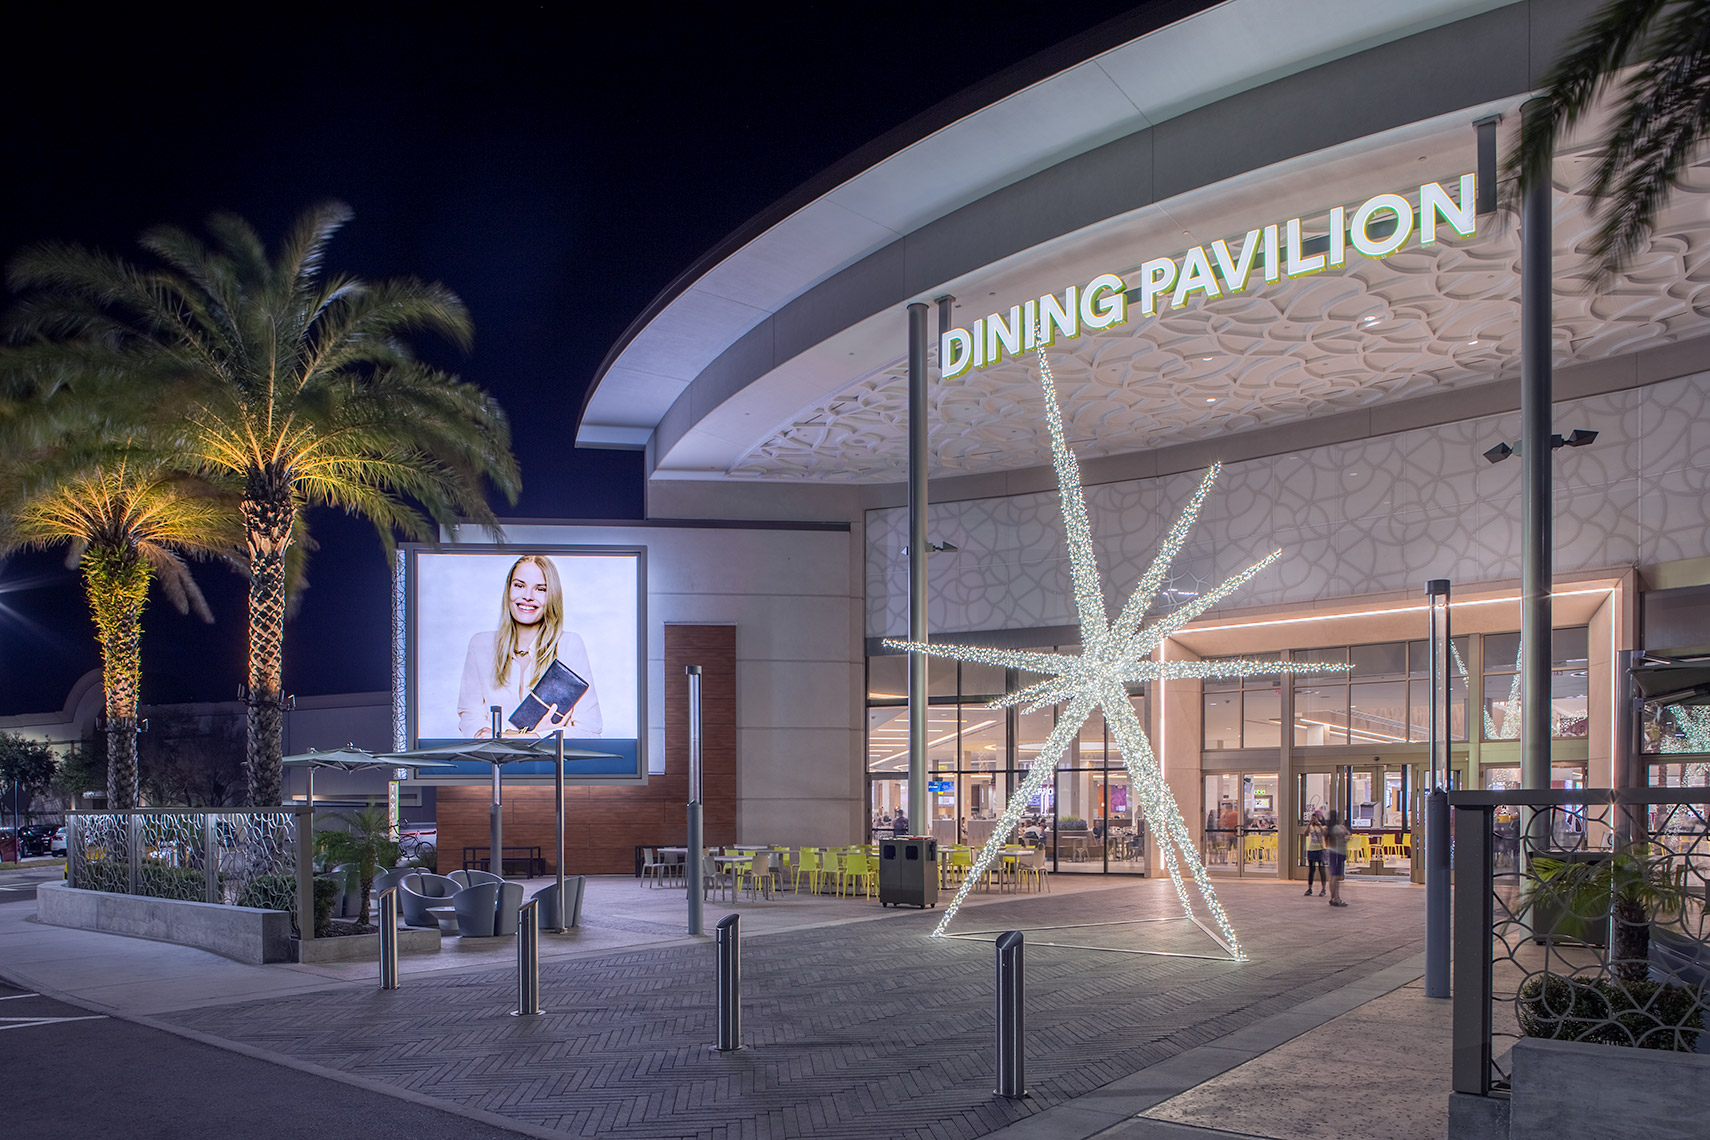 night exterior at florida mall dining pavilion